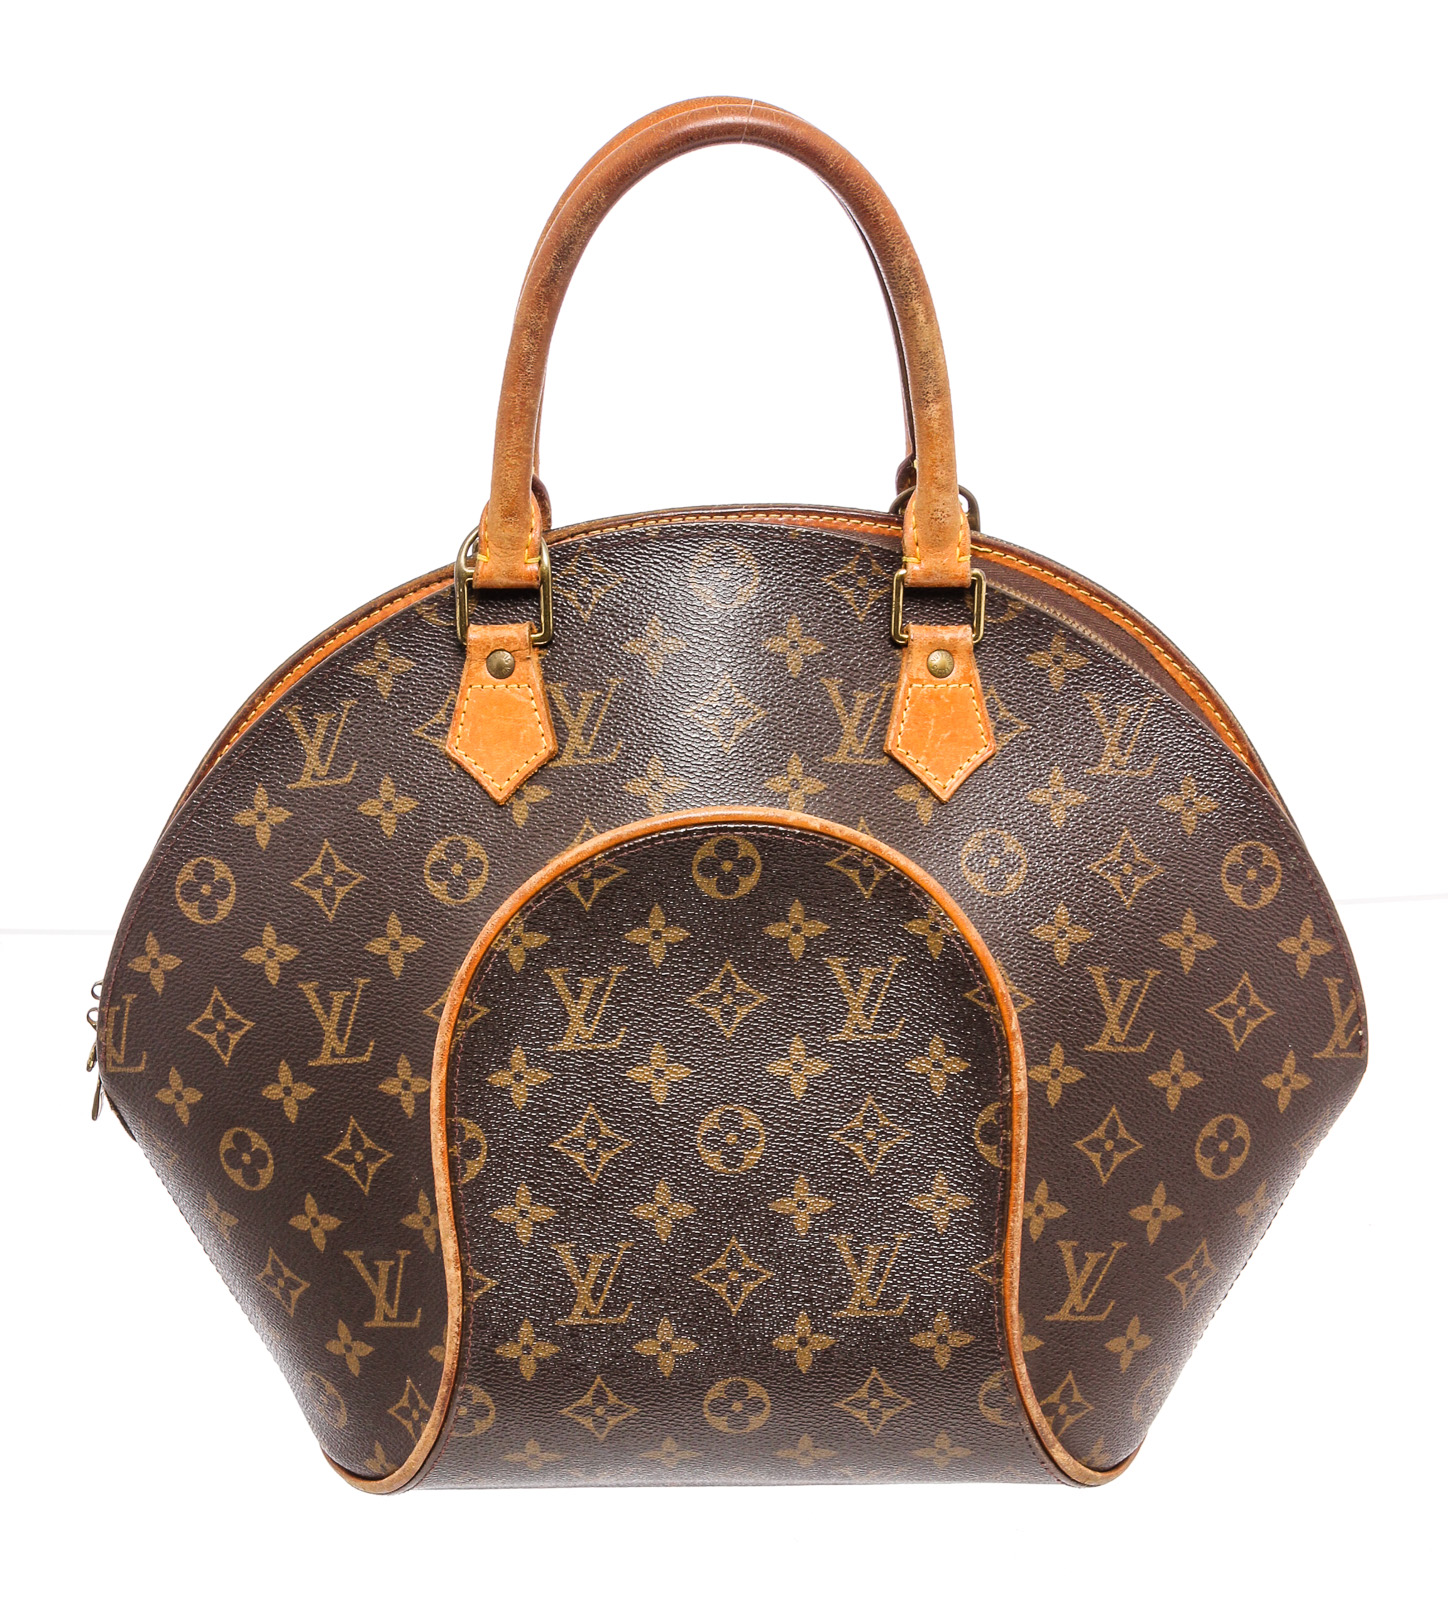 Louis Vuitton Monogram Ellipse Bag Marque Luxury.jpg